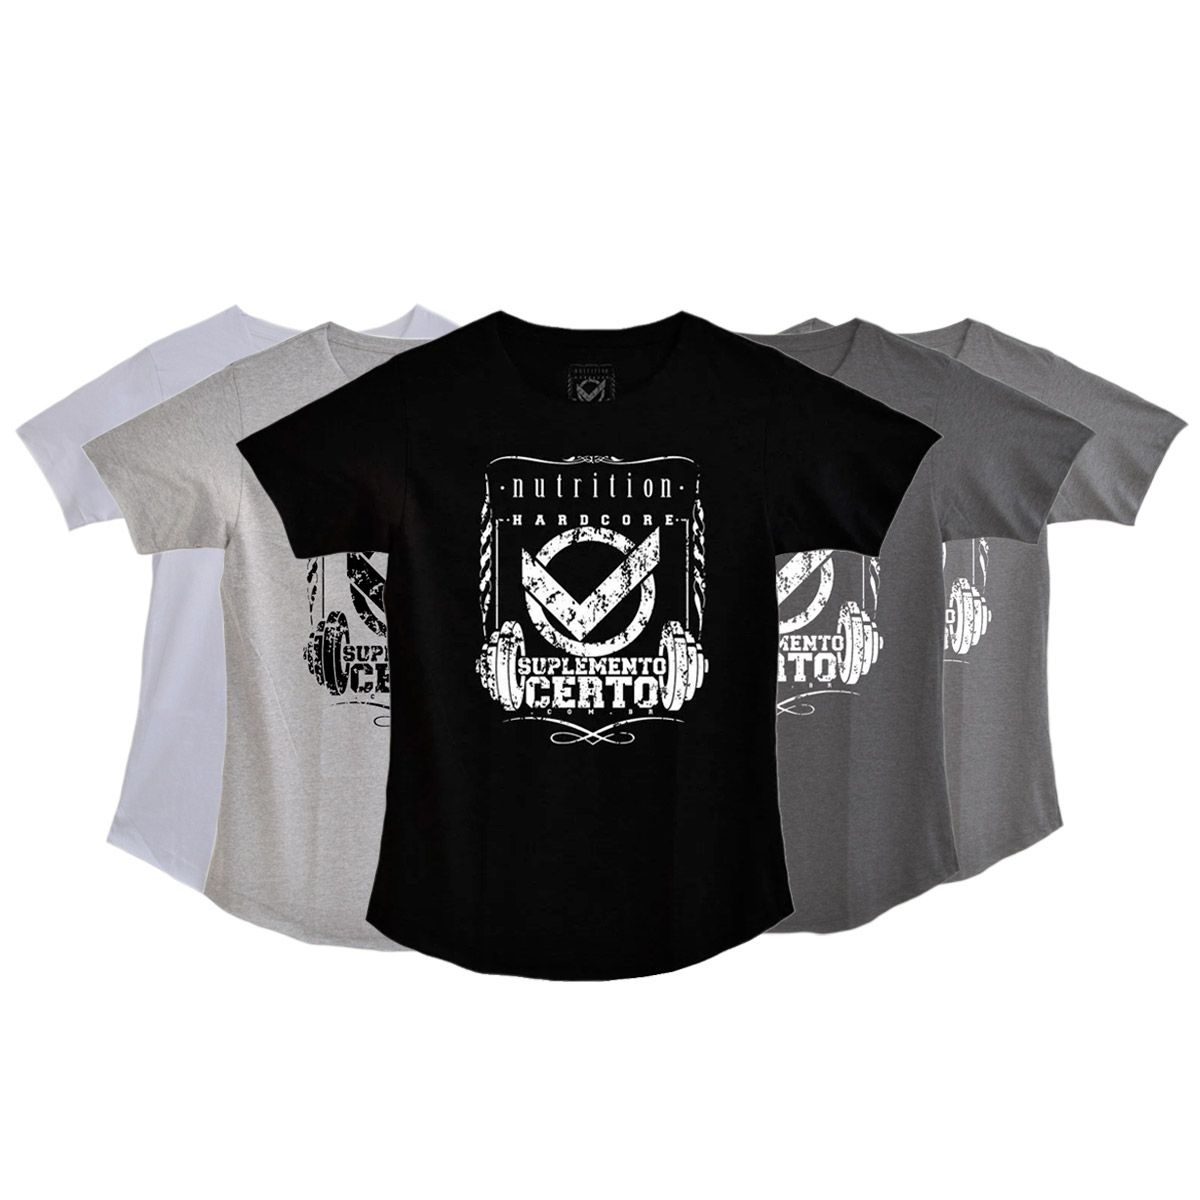 Camiseta Long Hardcore Nutrition - Suplemento Certo